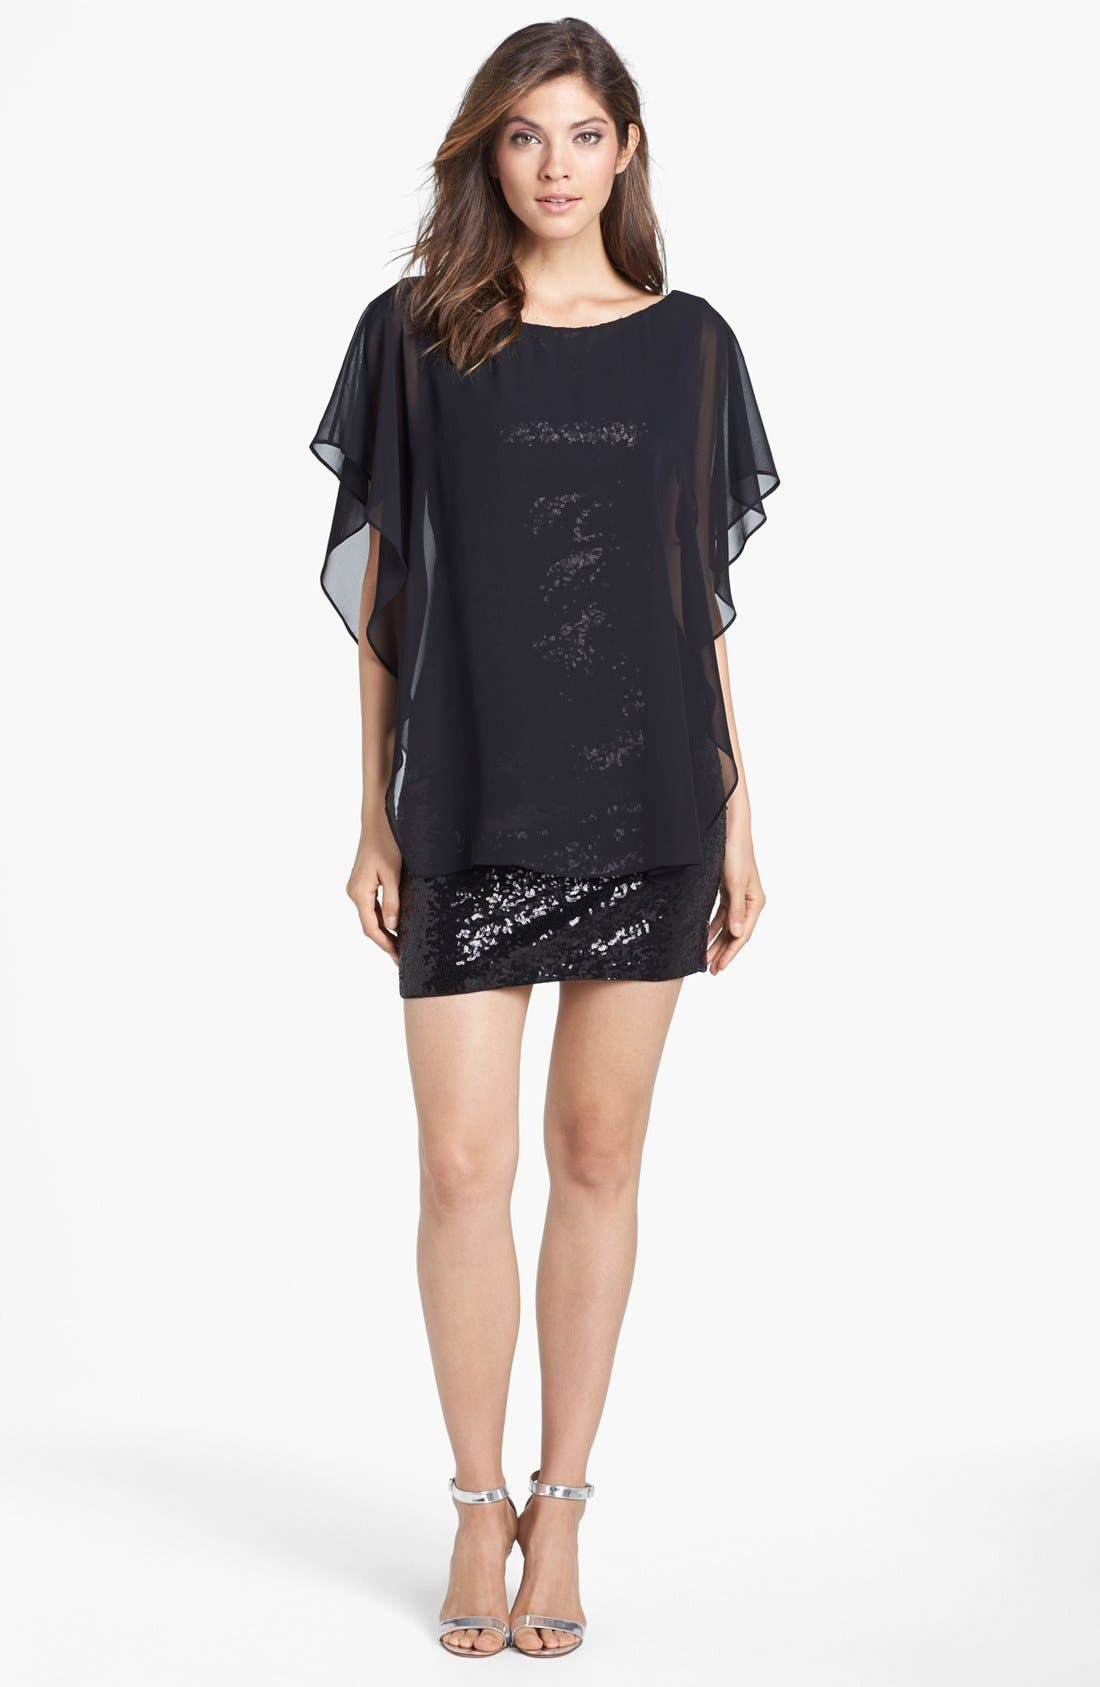 Main Image - Laundry by Shelli Segal Chiffon Overlay Sequin Dress